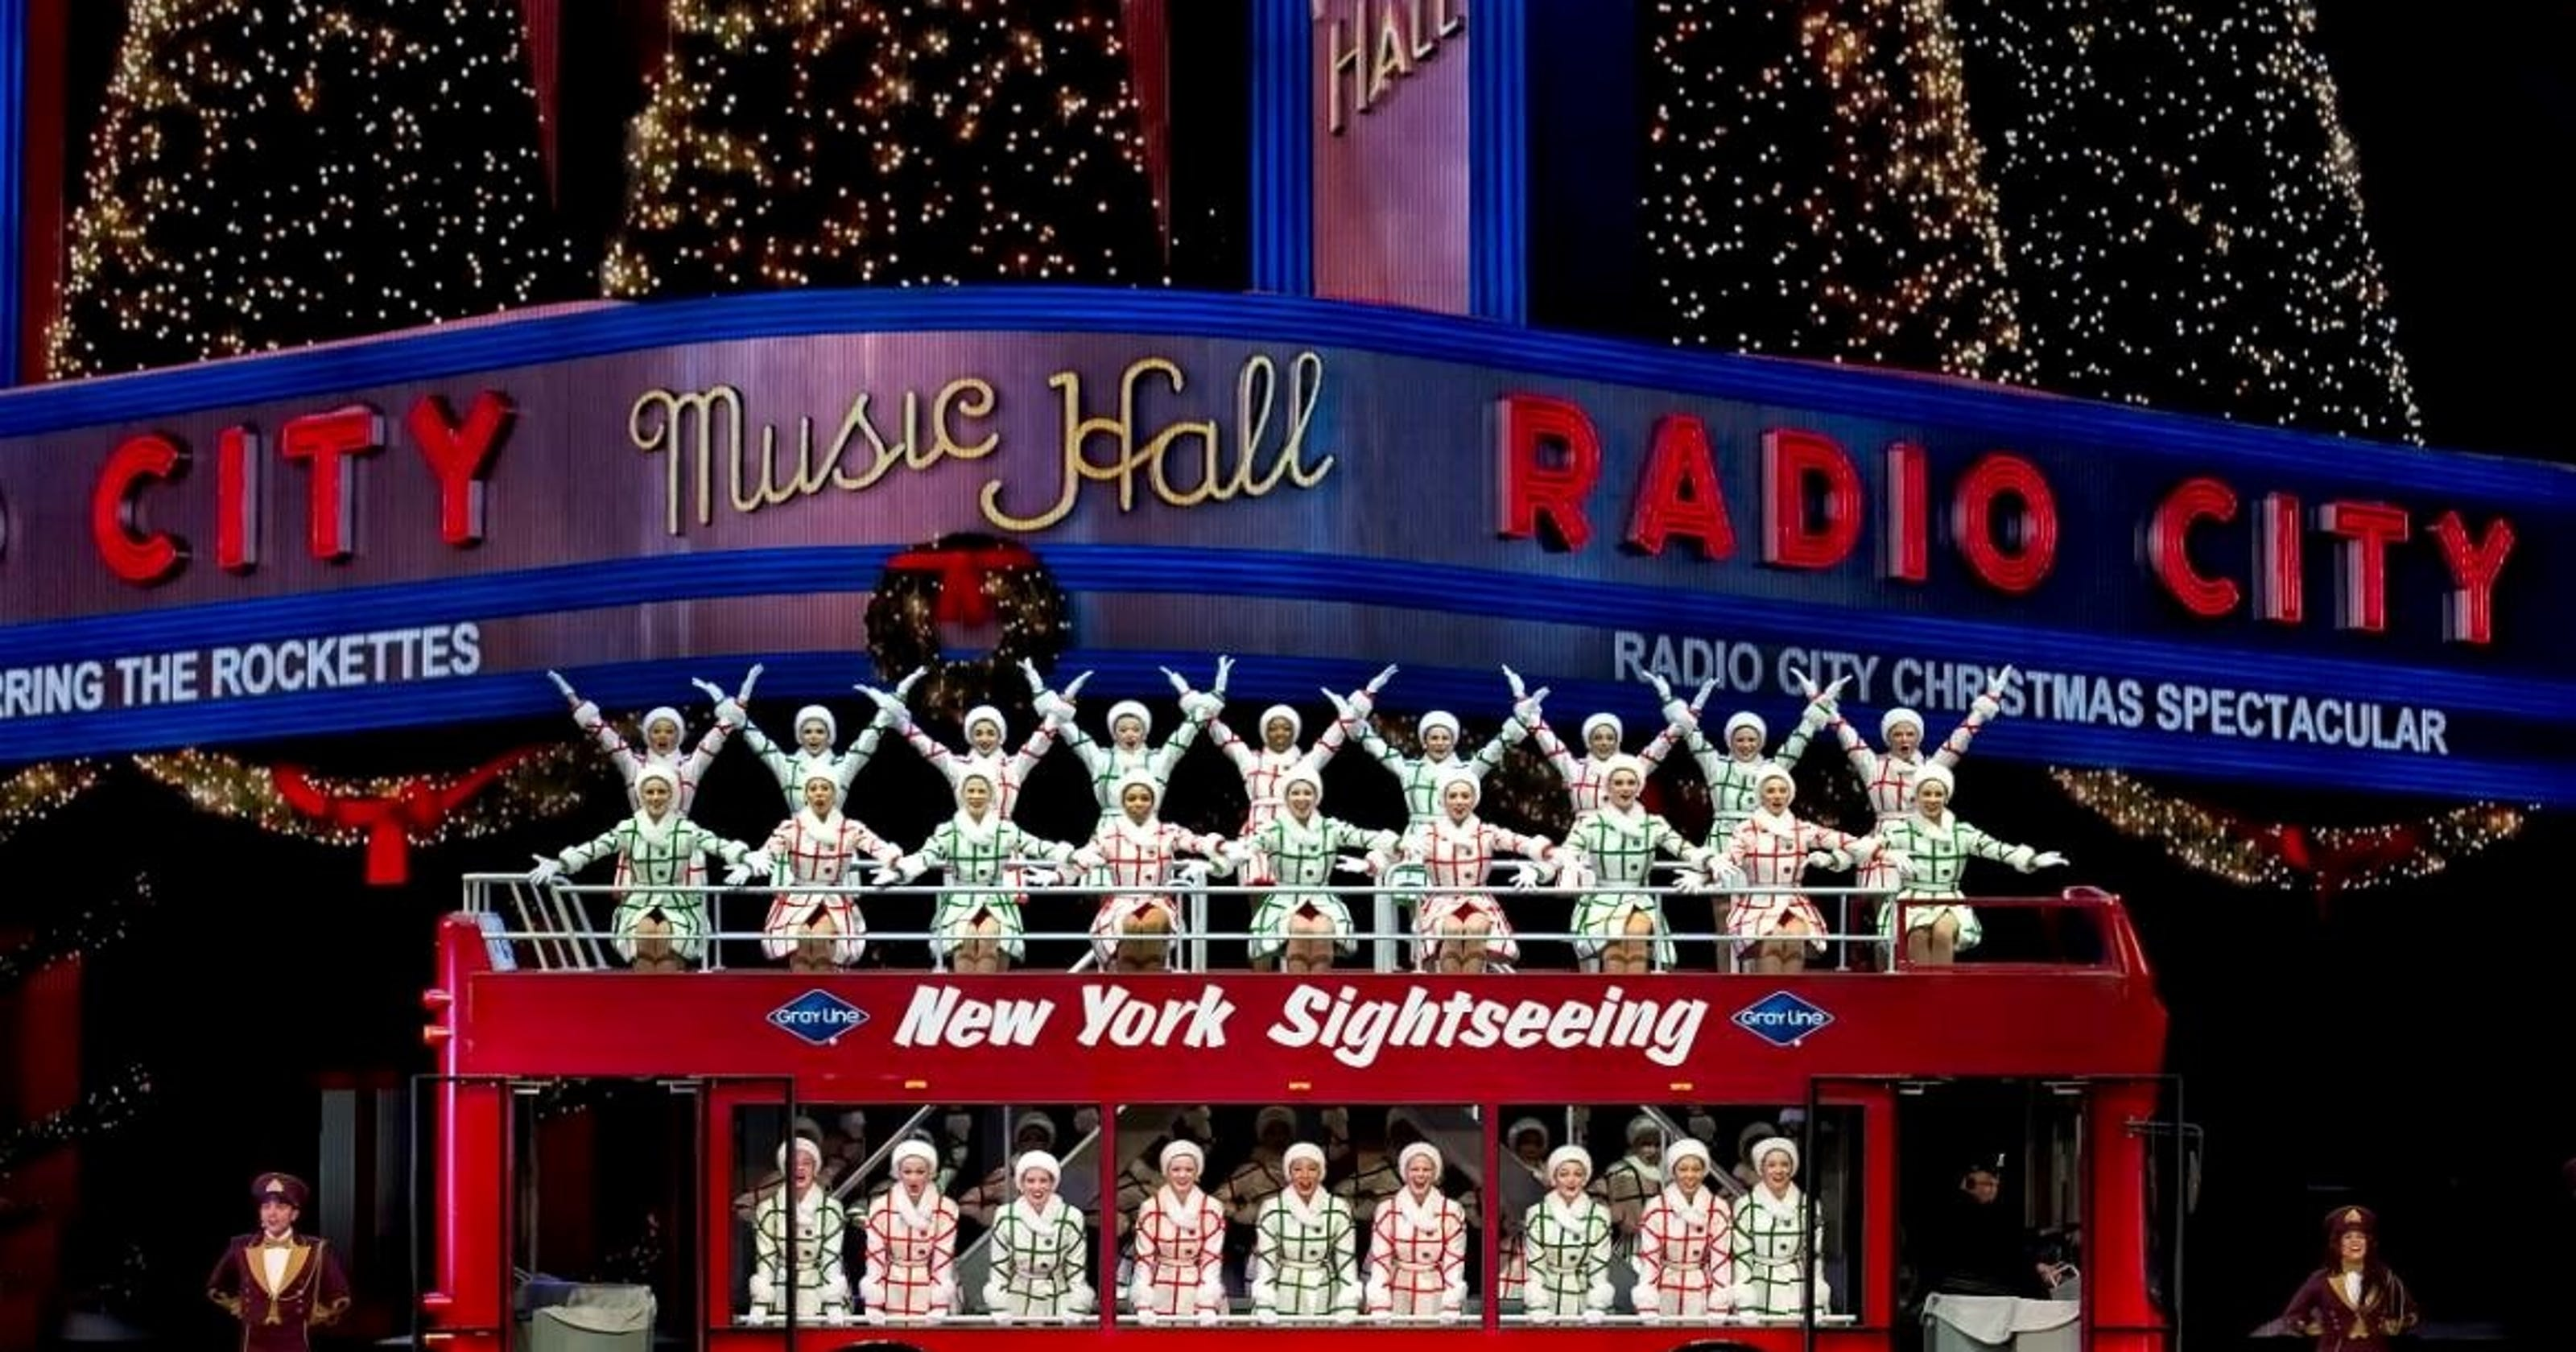 Radio City Christmas Spectacular Tickets.Christmas Shows To See Radio City Christmas Spectacular